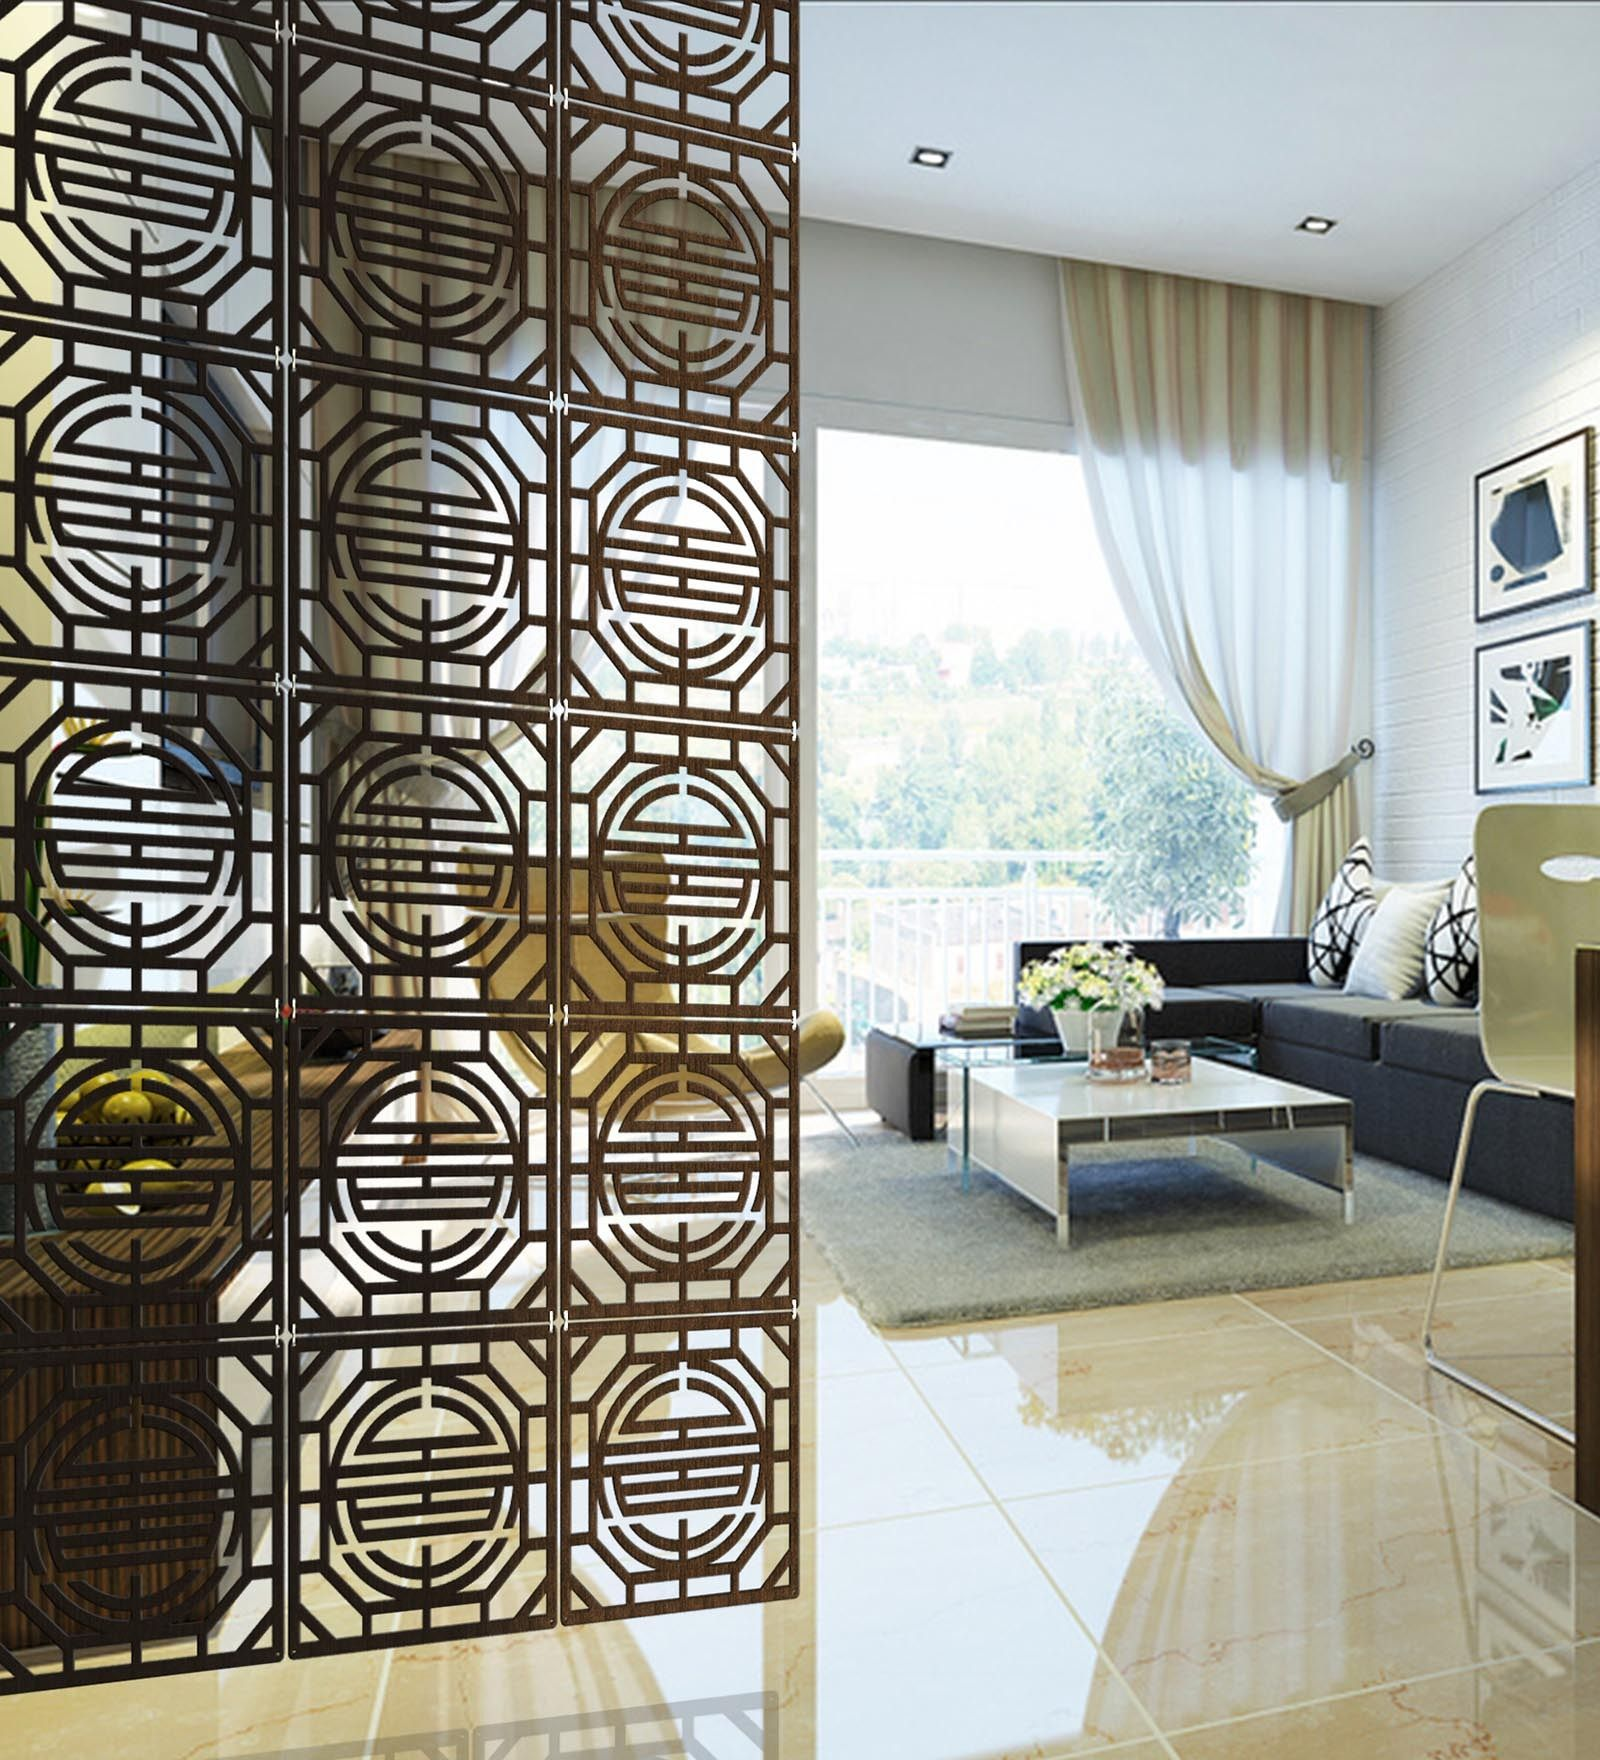 Buy Planet Decor Wenge Acrylic With Wooden Lamination Geometric Room Divider Online